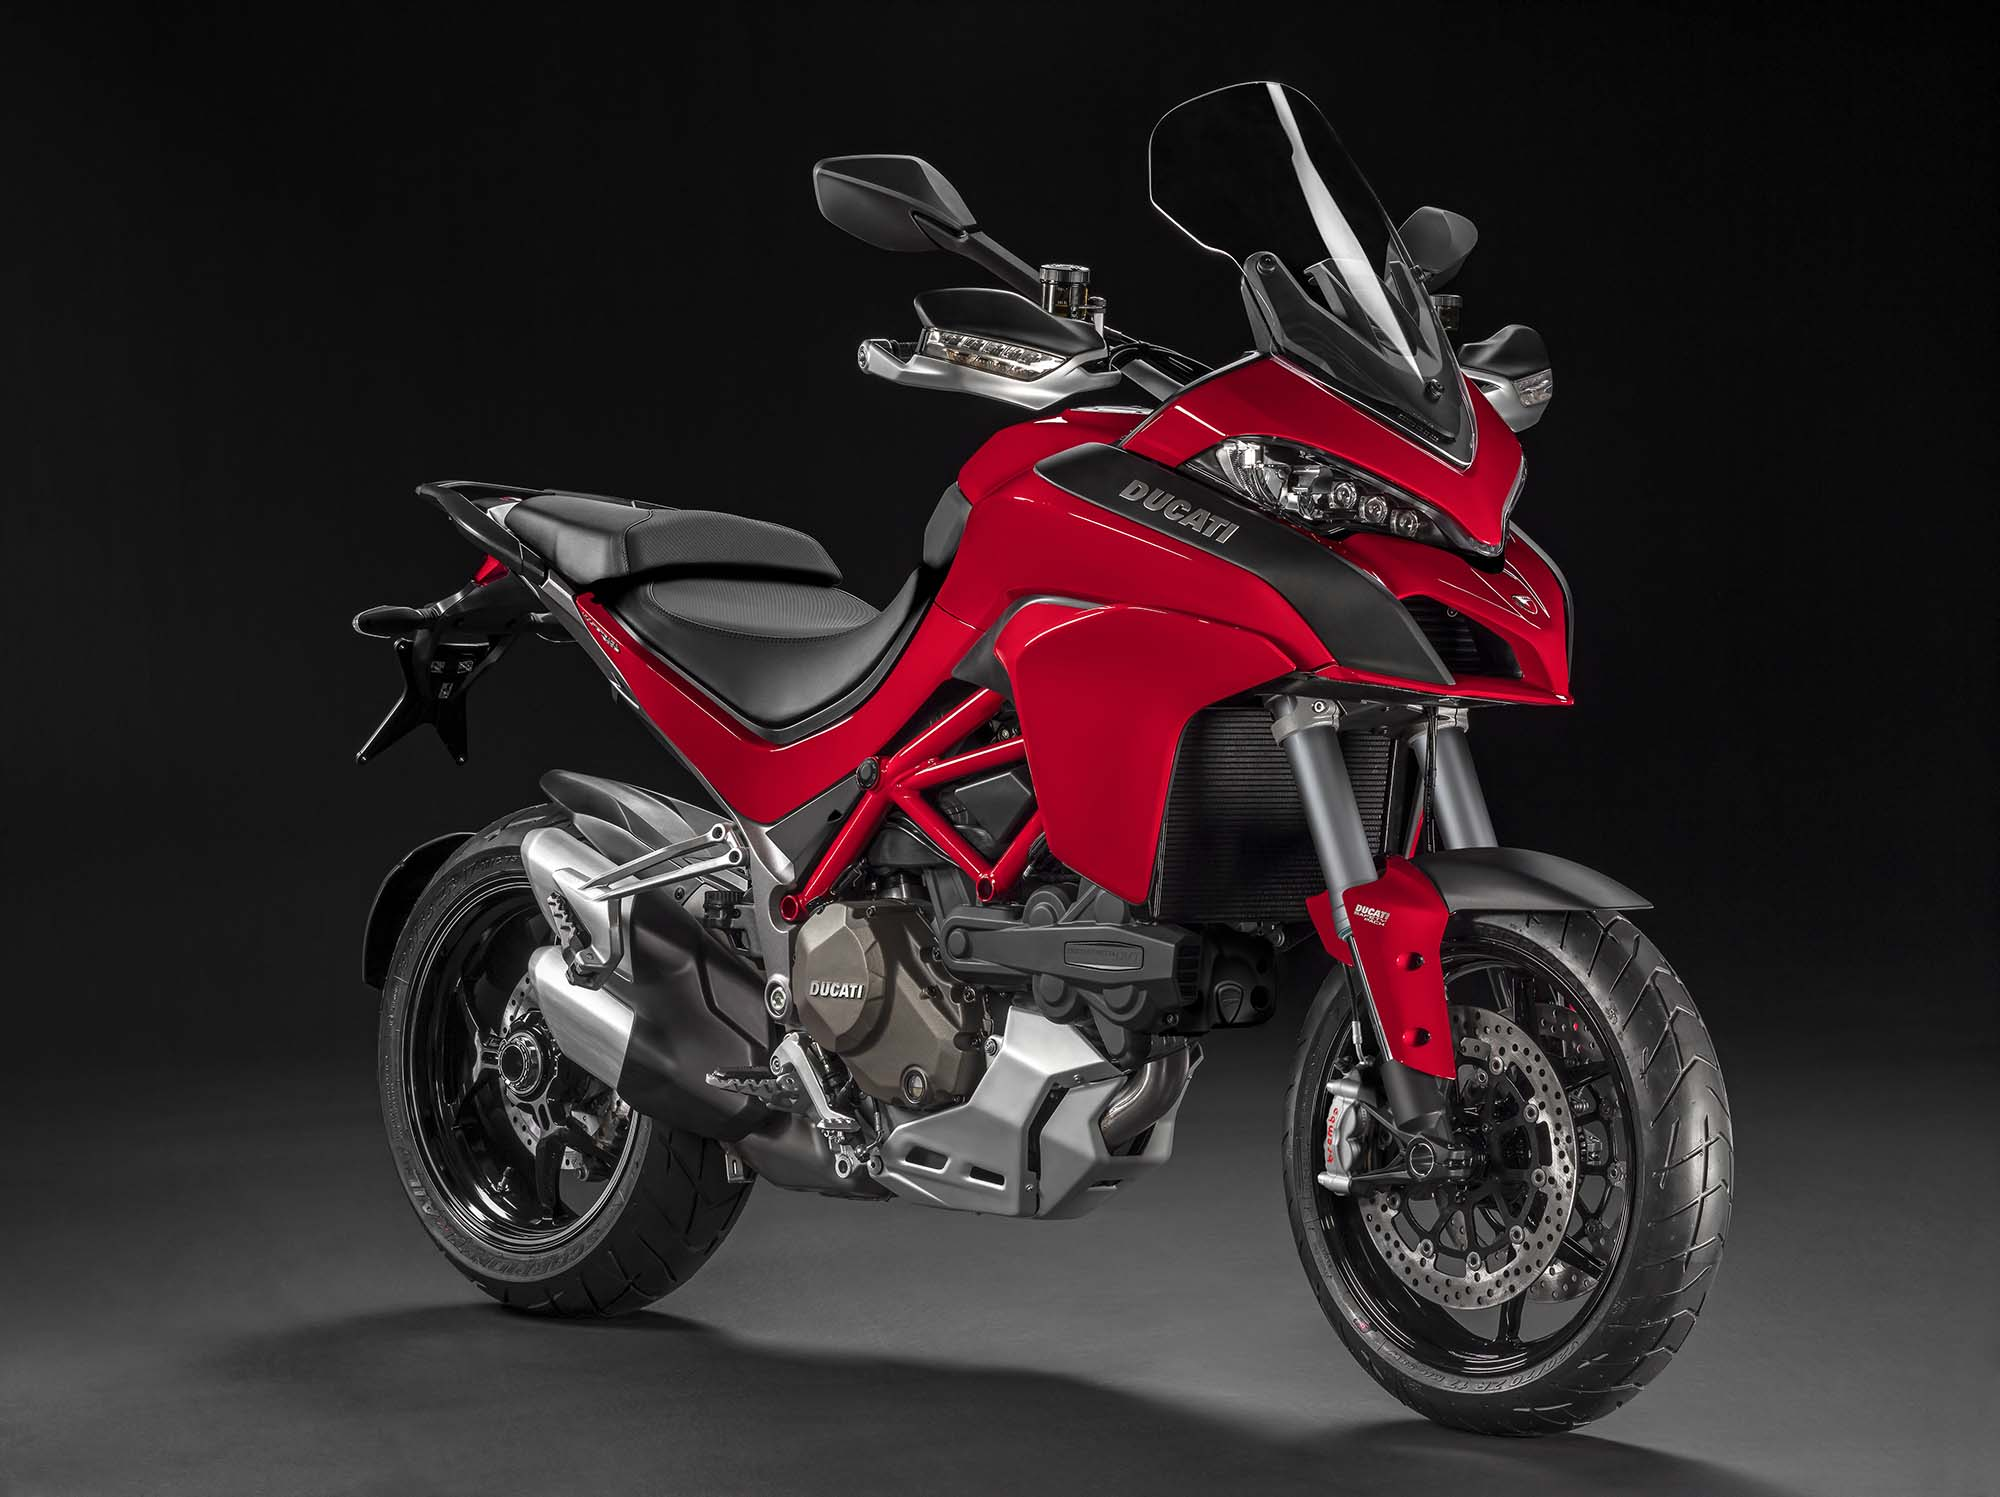 2015 ducati multistrada 1200 a new face in adv asphalt. Black Bedroom Furniture Sets. Home Design Ideas